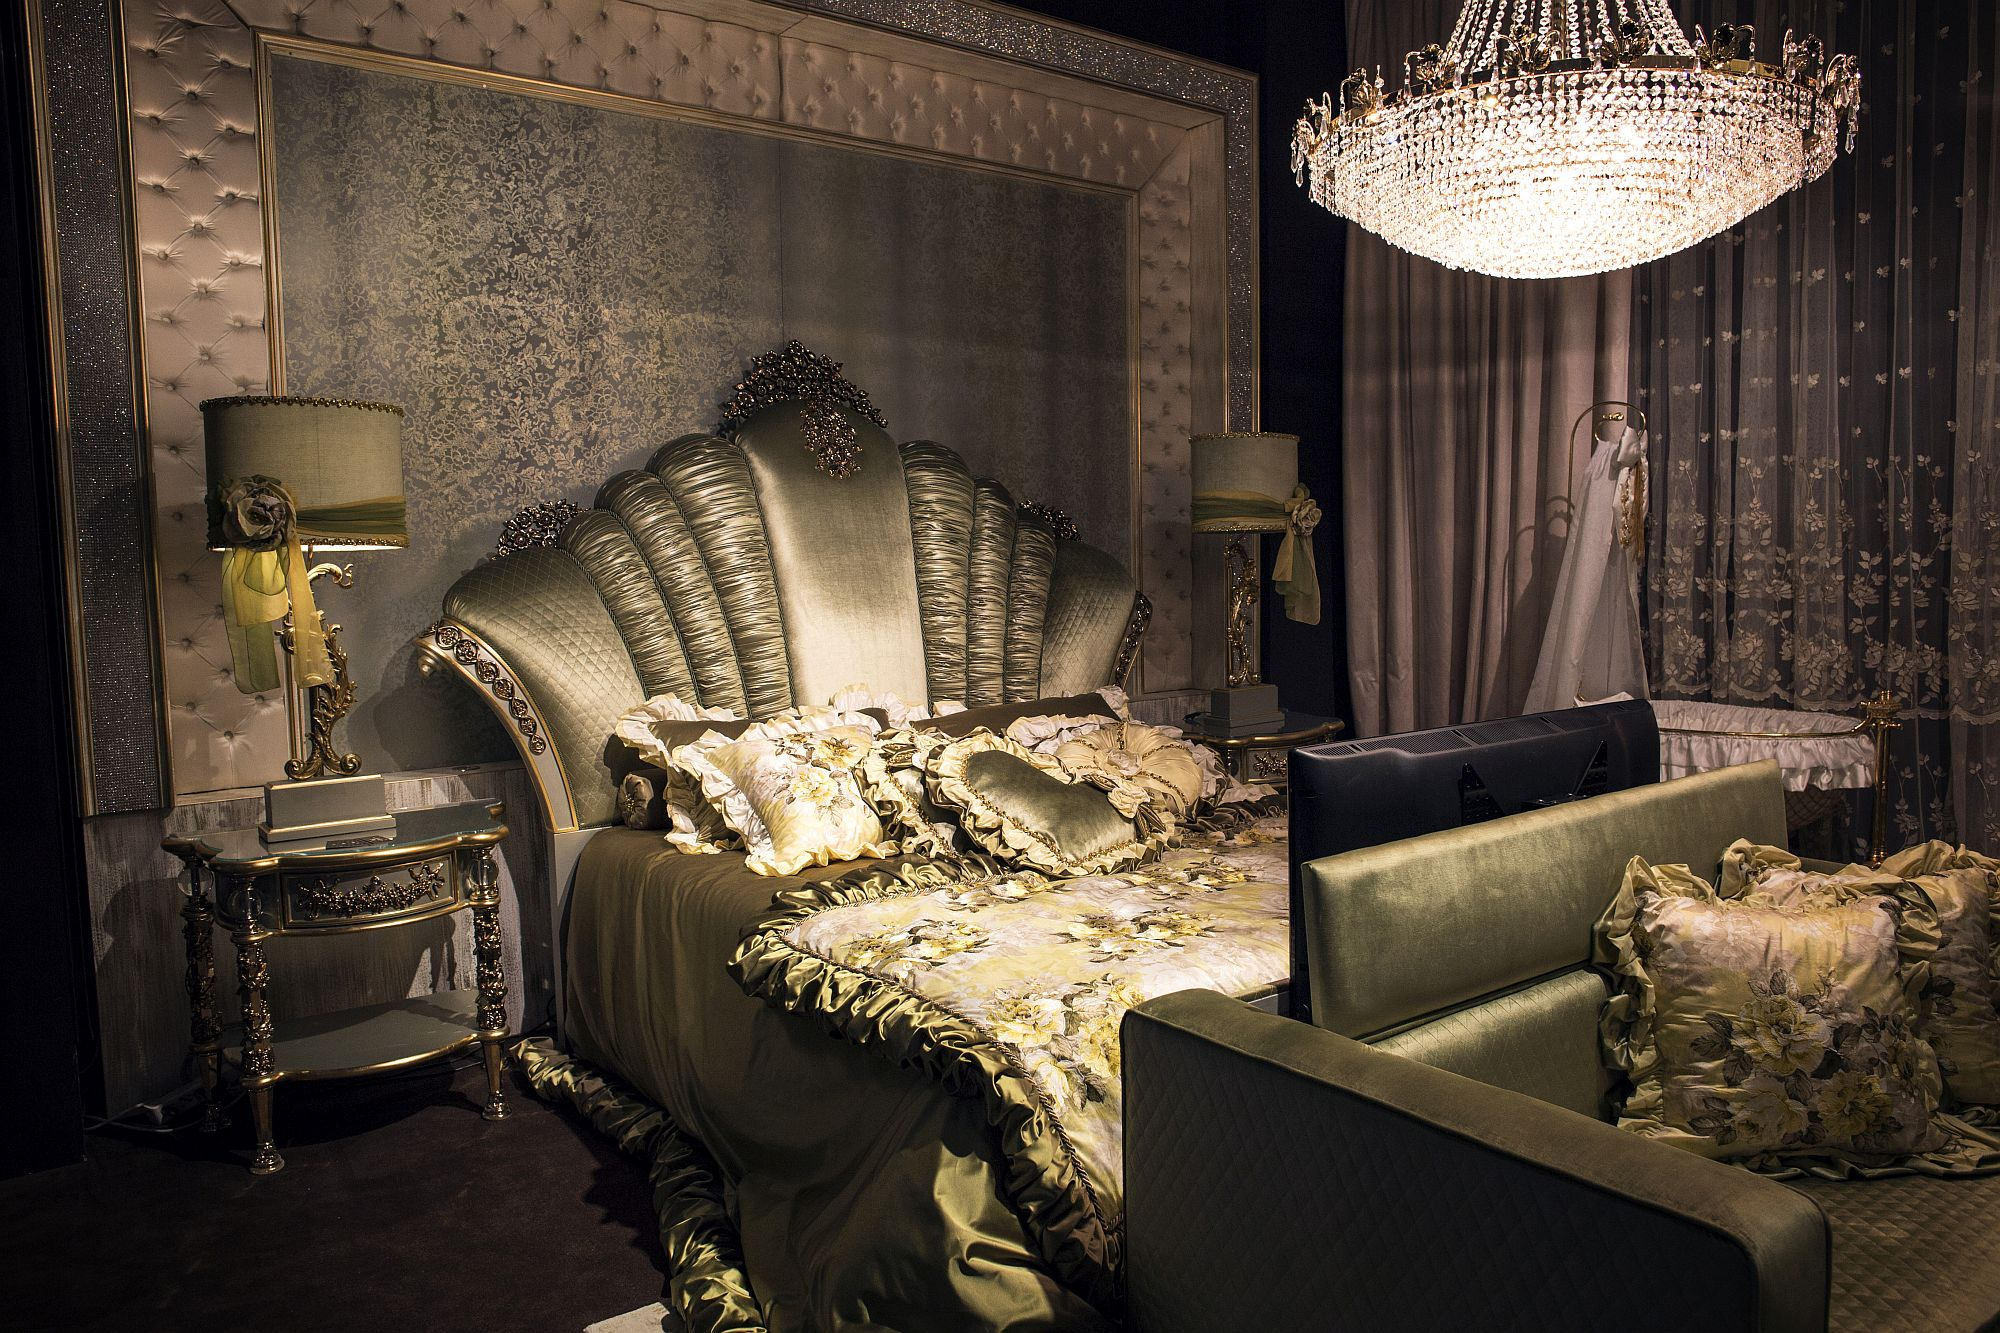 Feel-like-royalty-inside-this-goregously-stunning-bedroom